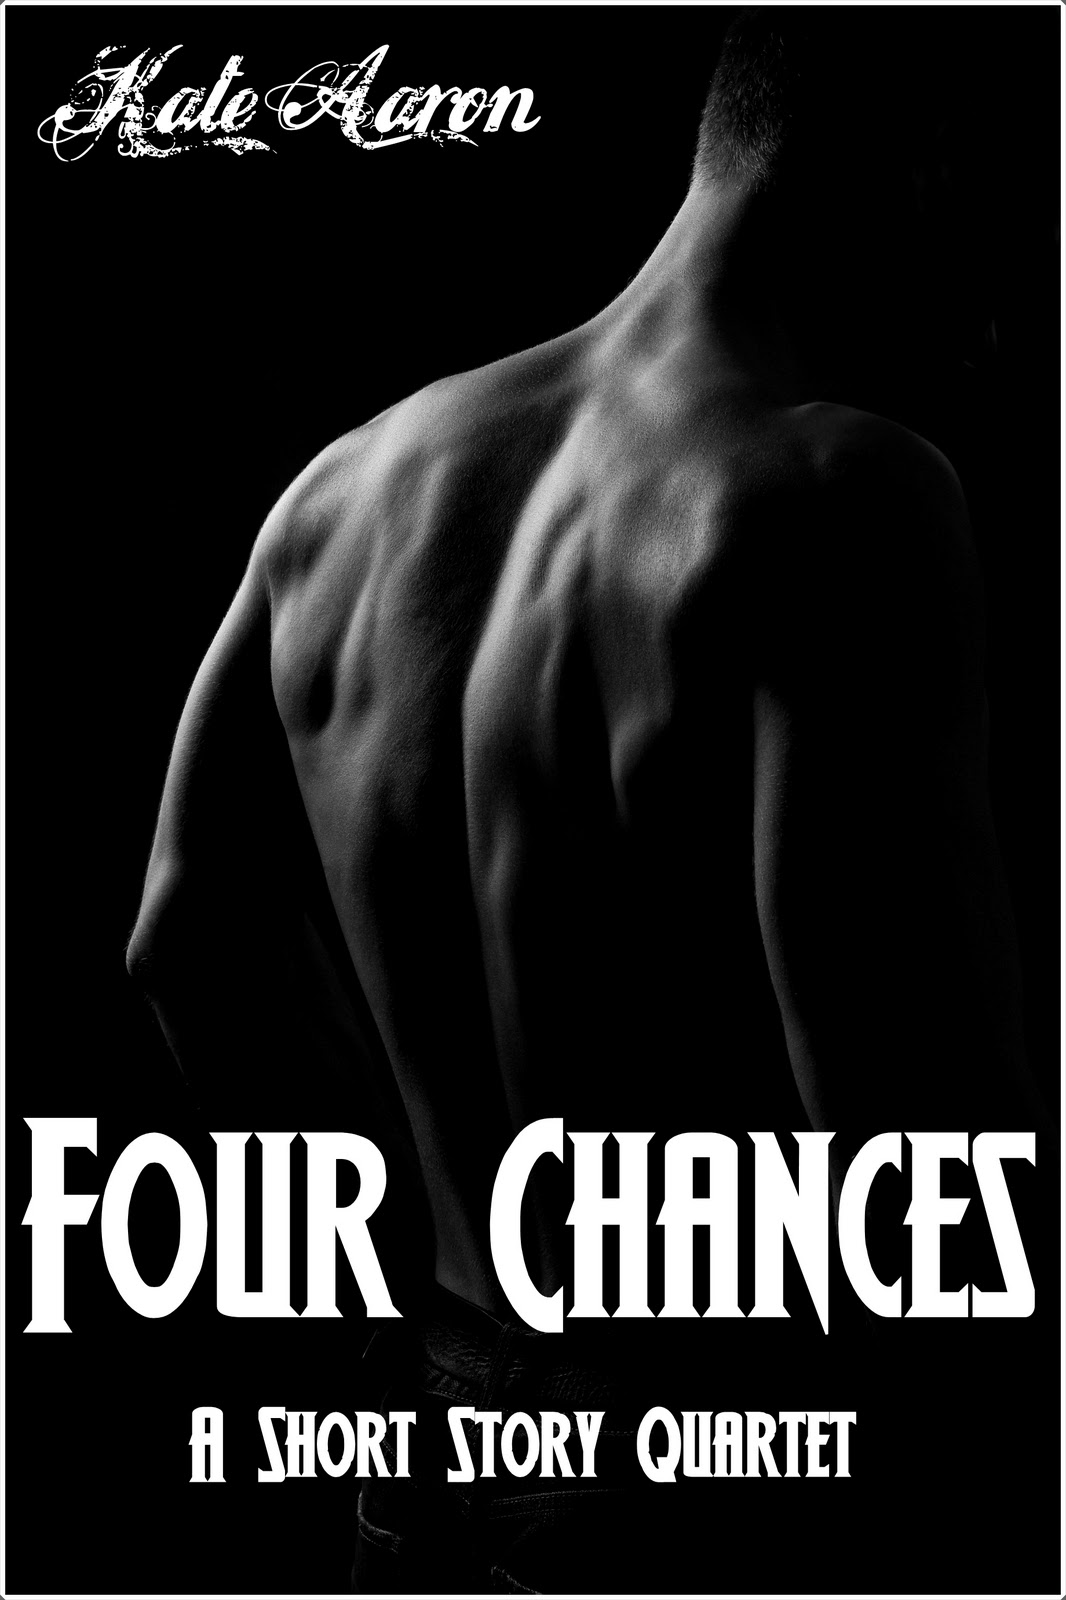 ... of attraction and angst; seduction and separation. Genre: Gay (m/m)